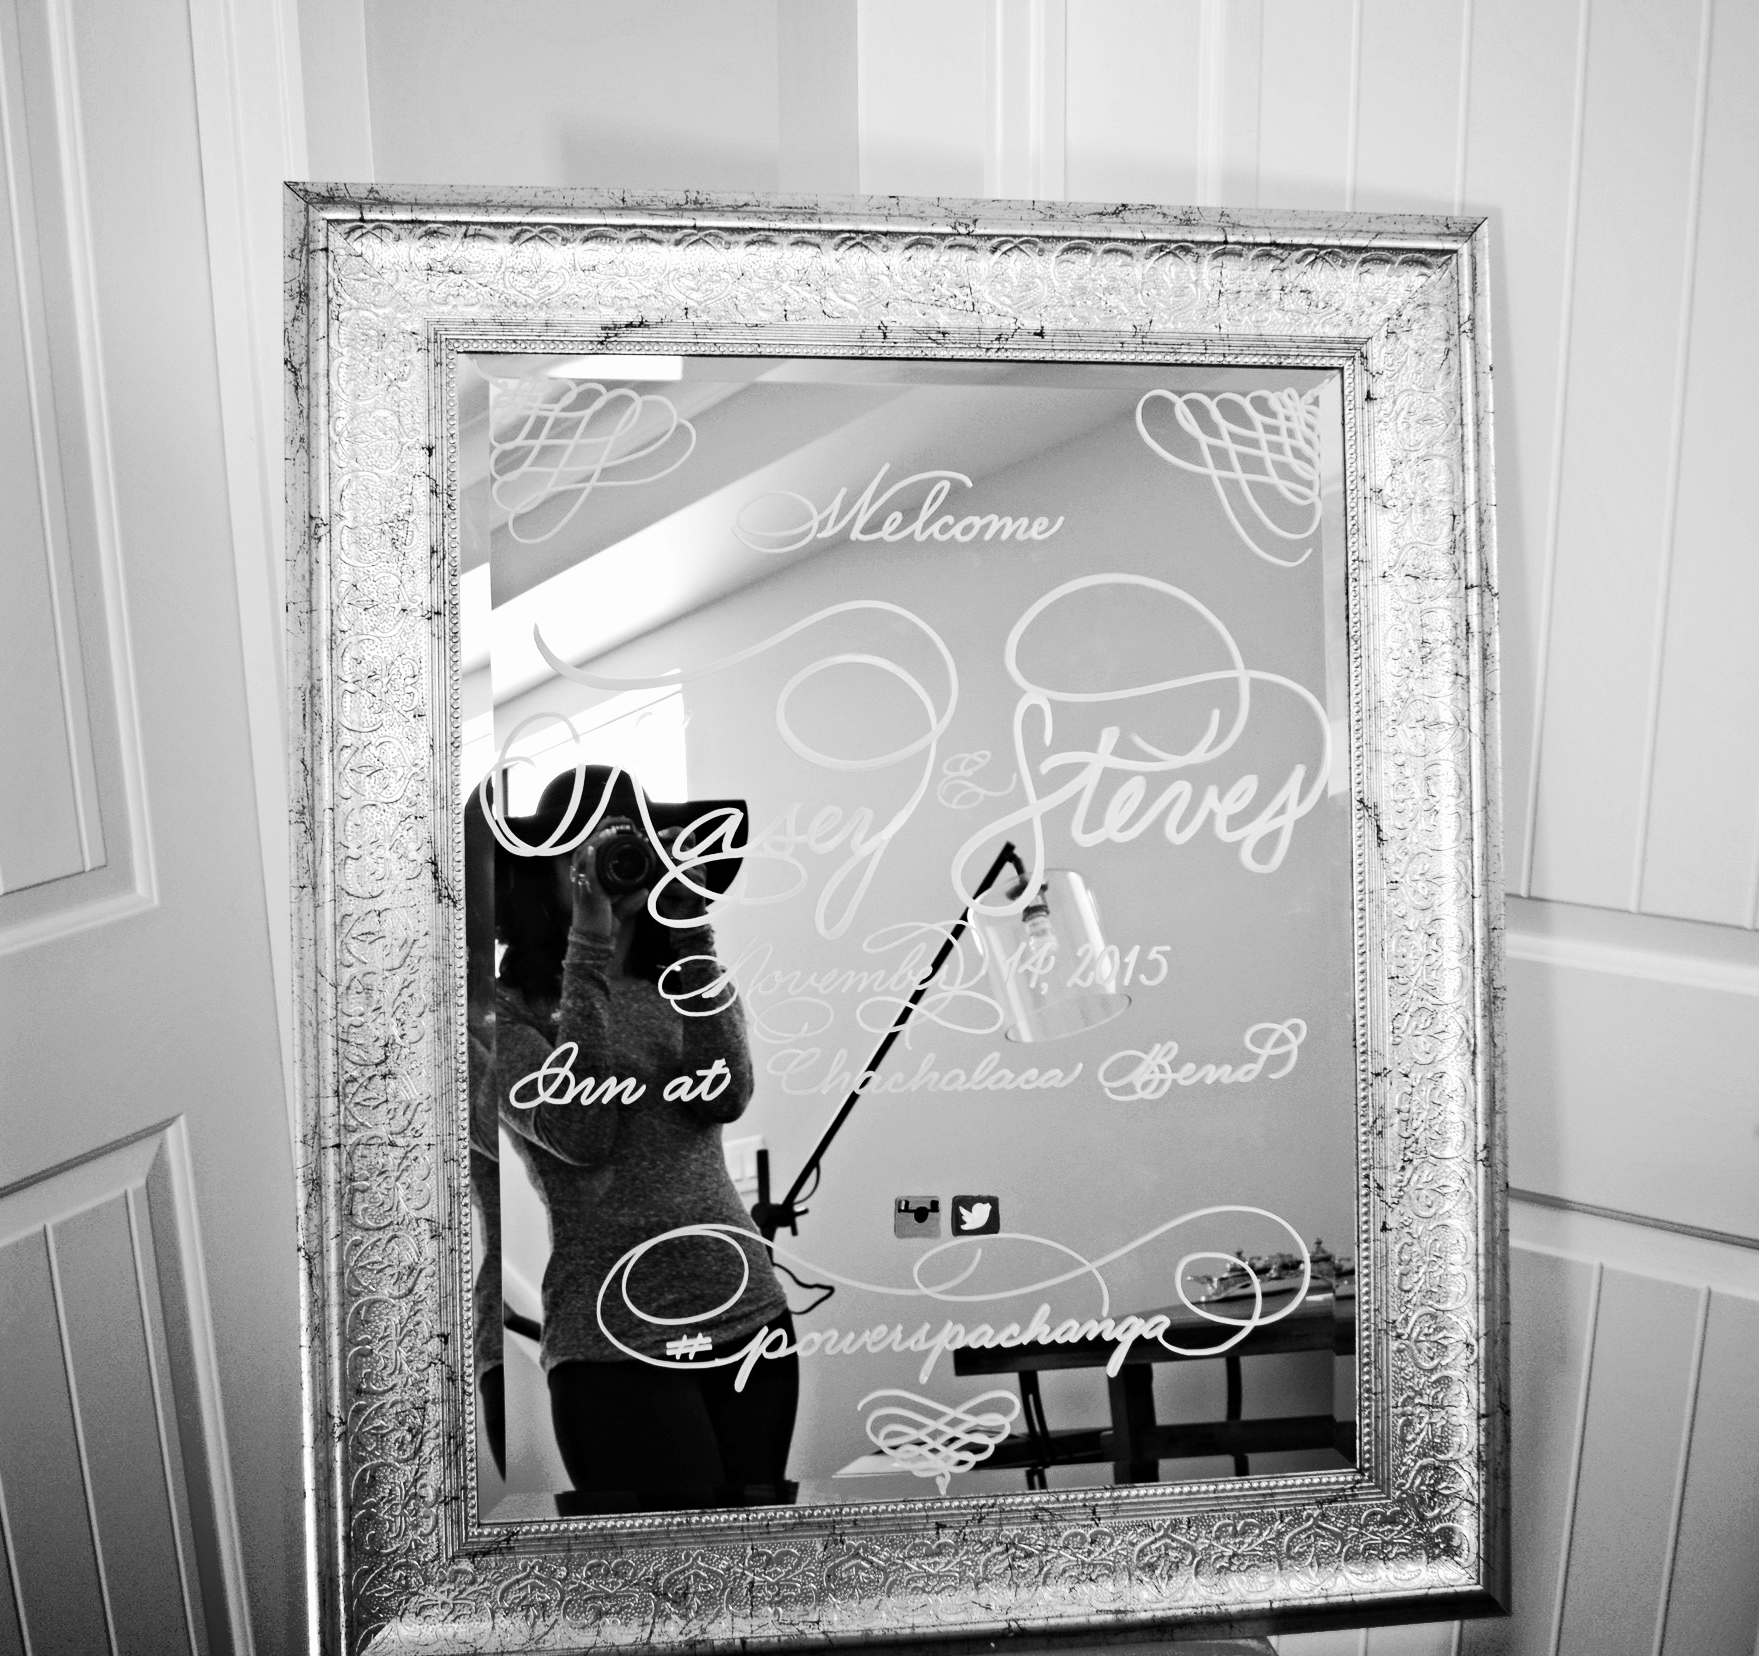 Houston Calligraphy Mirror Welcome Sign_Seating Chart 1.jpg